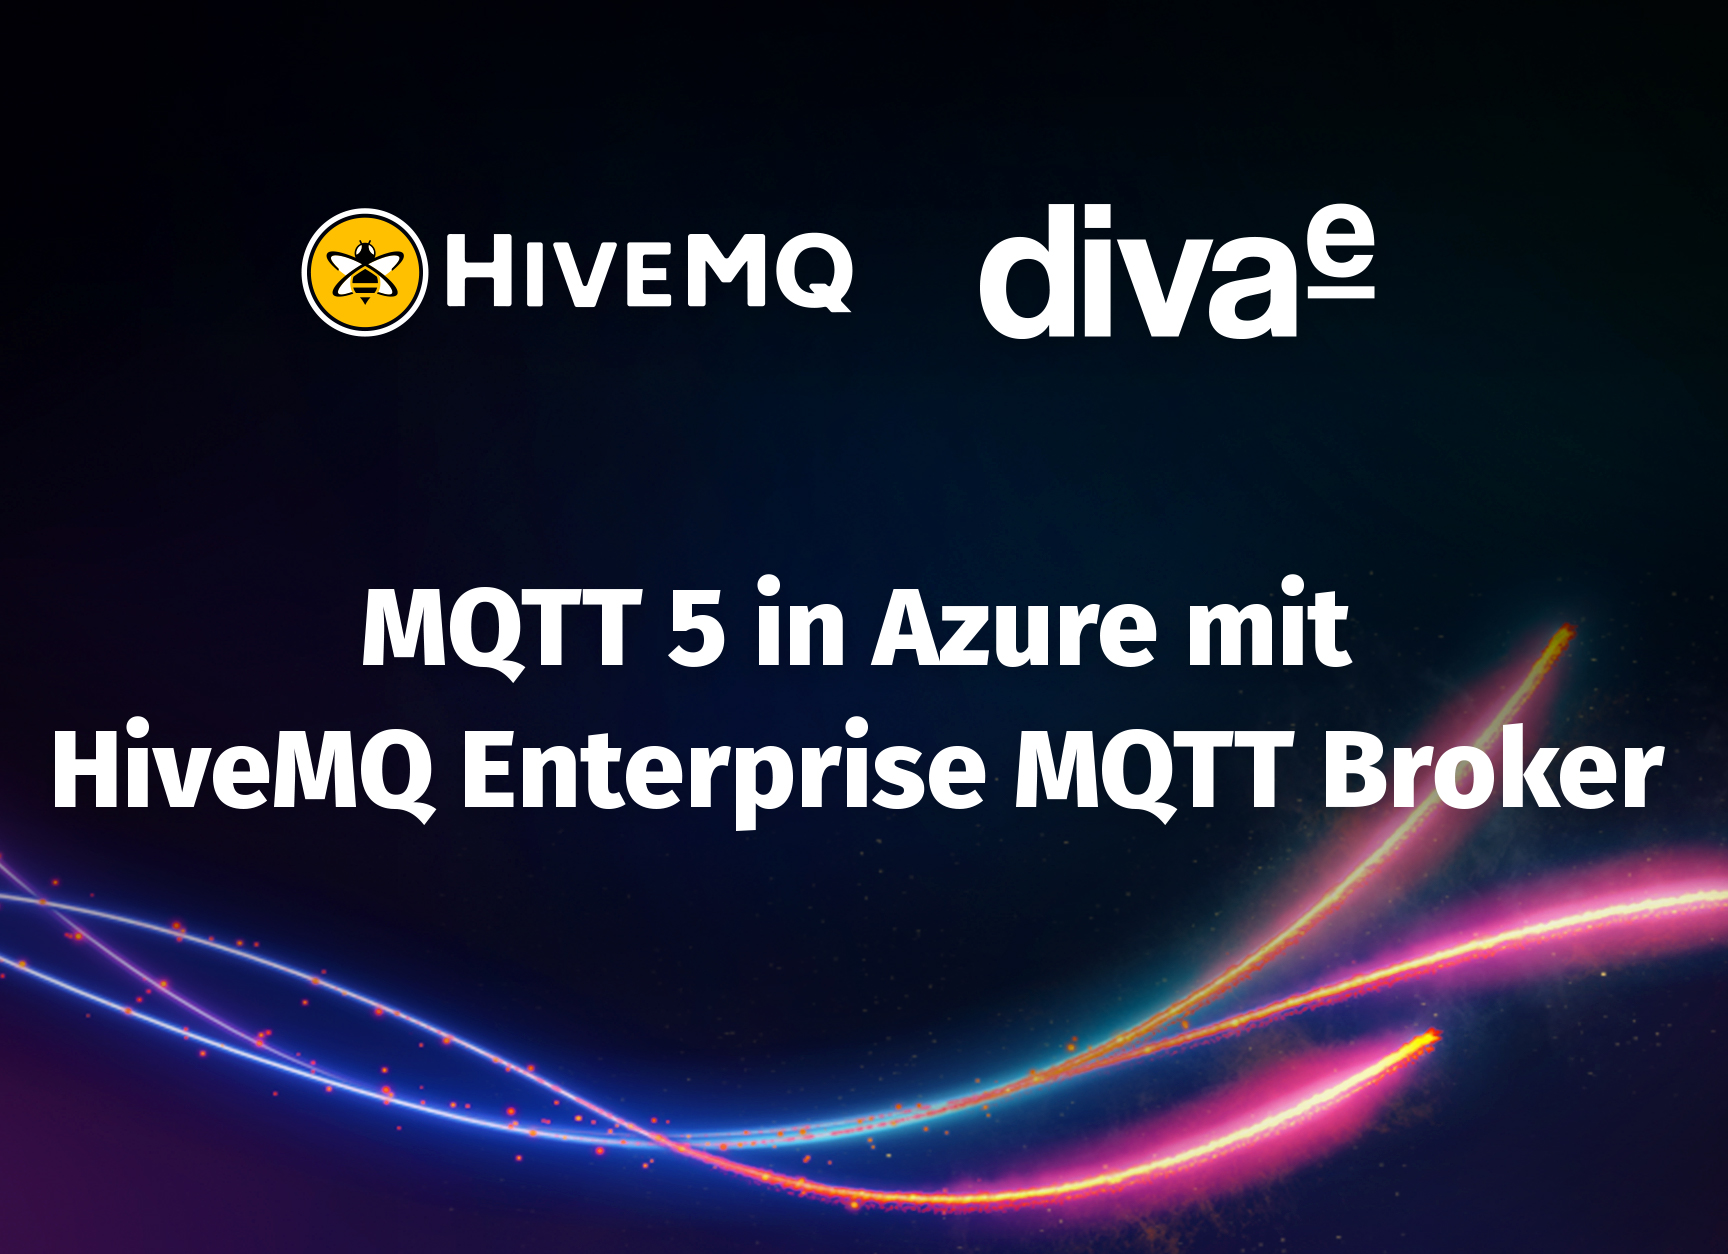 On-Demand Webinar: MQTT 5 in Azure mit HiveMQ Enterprise MQTT Broker